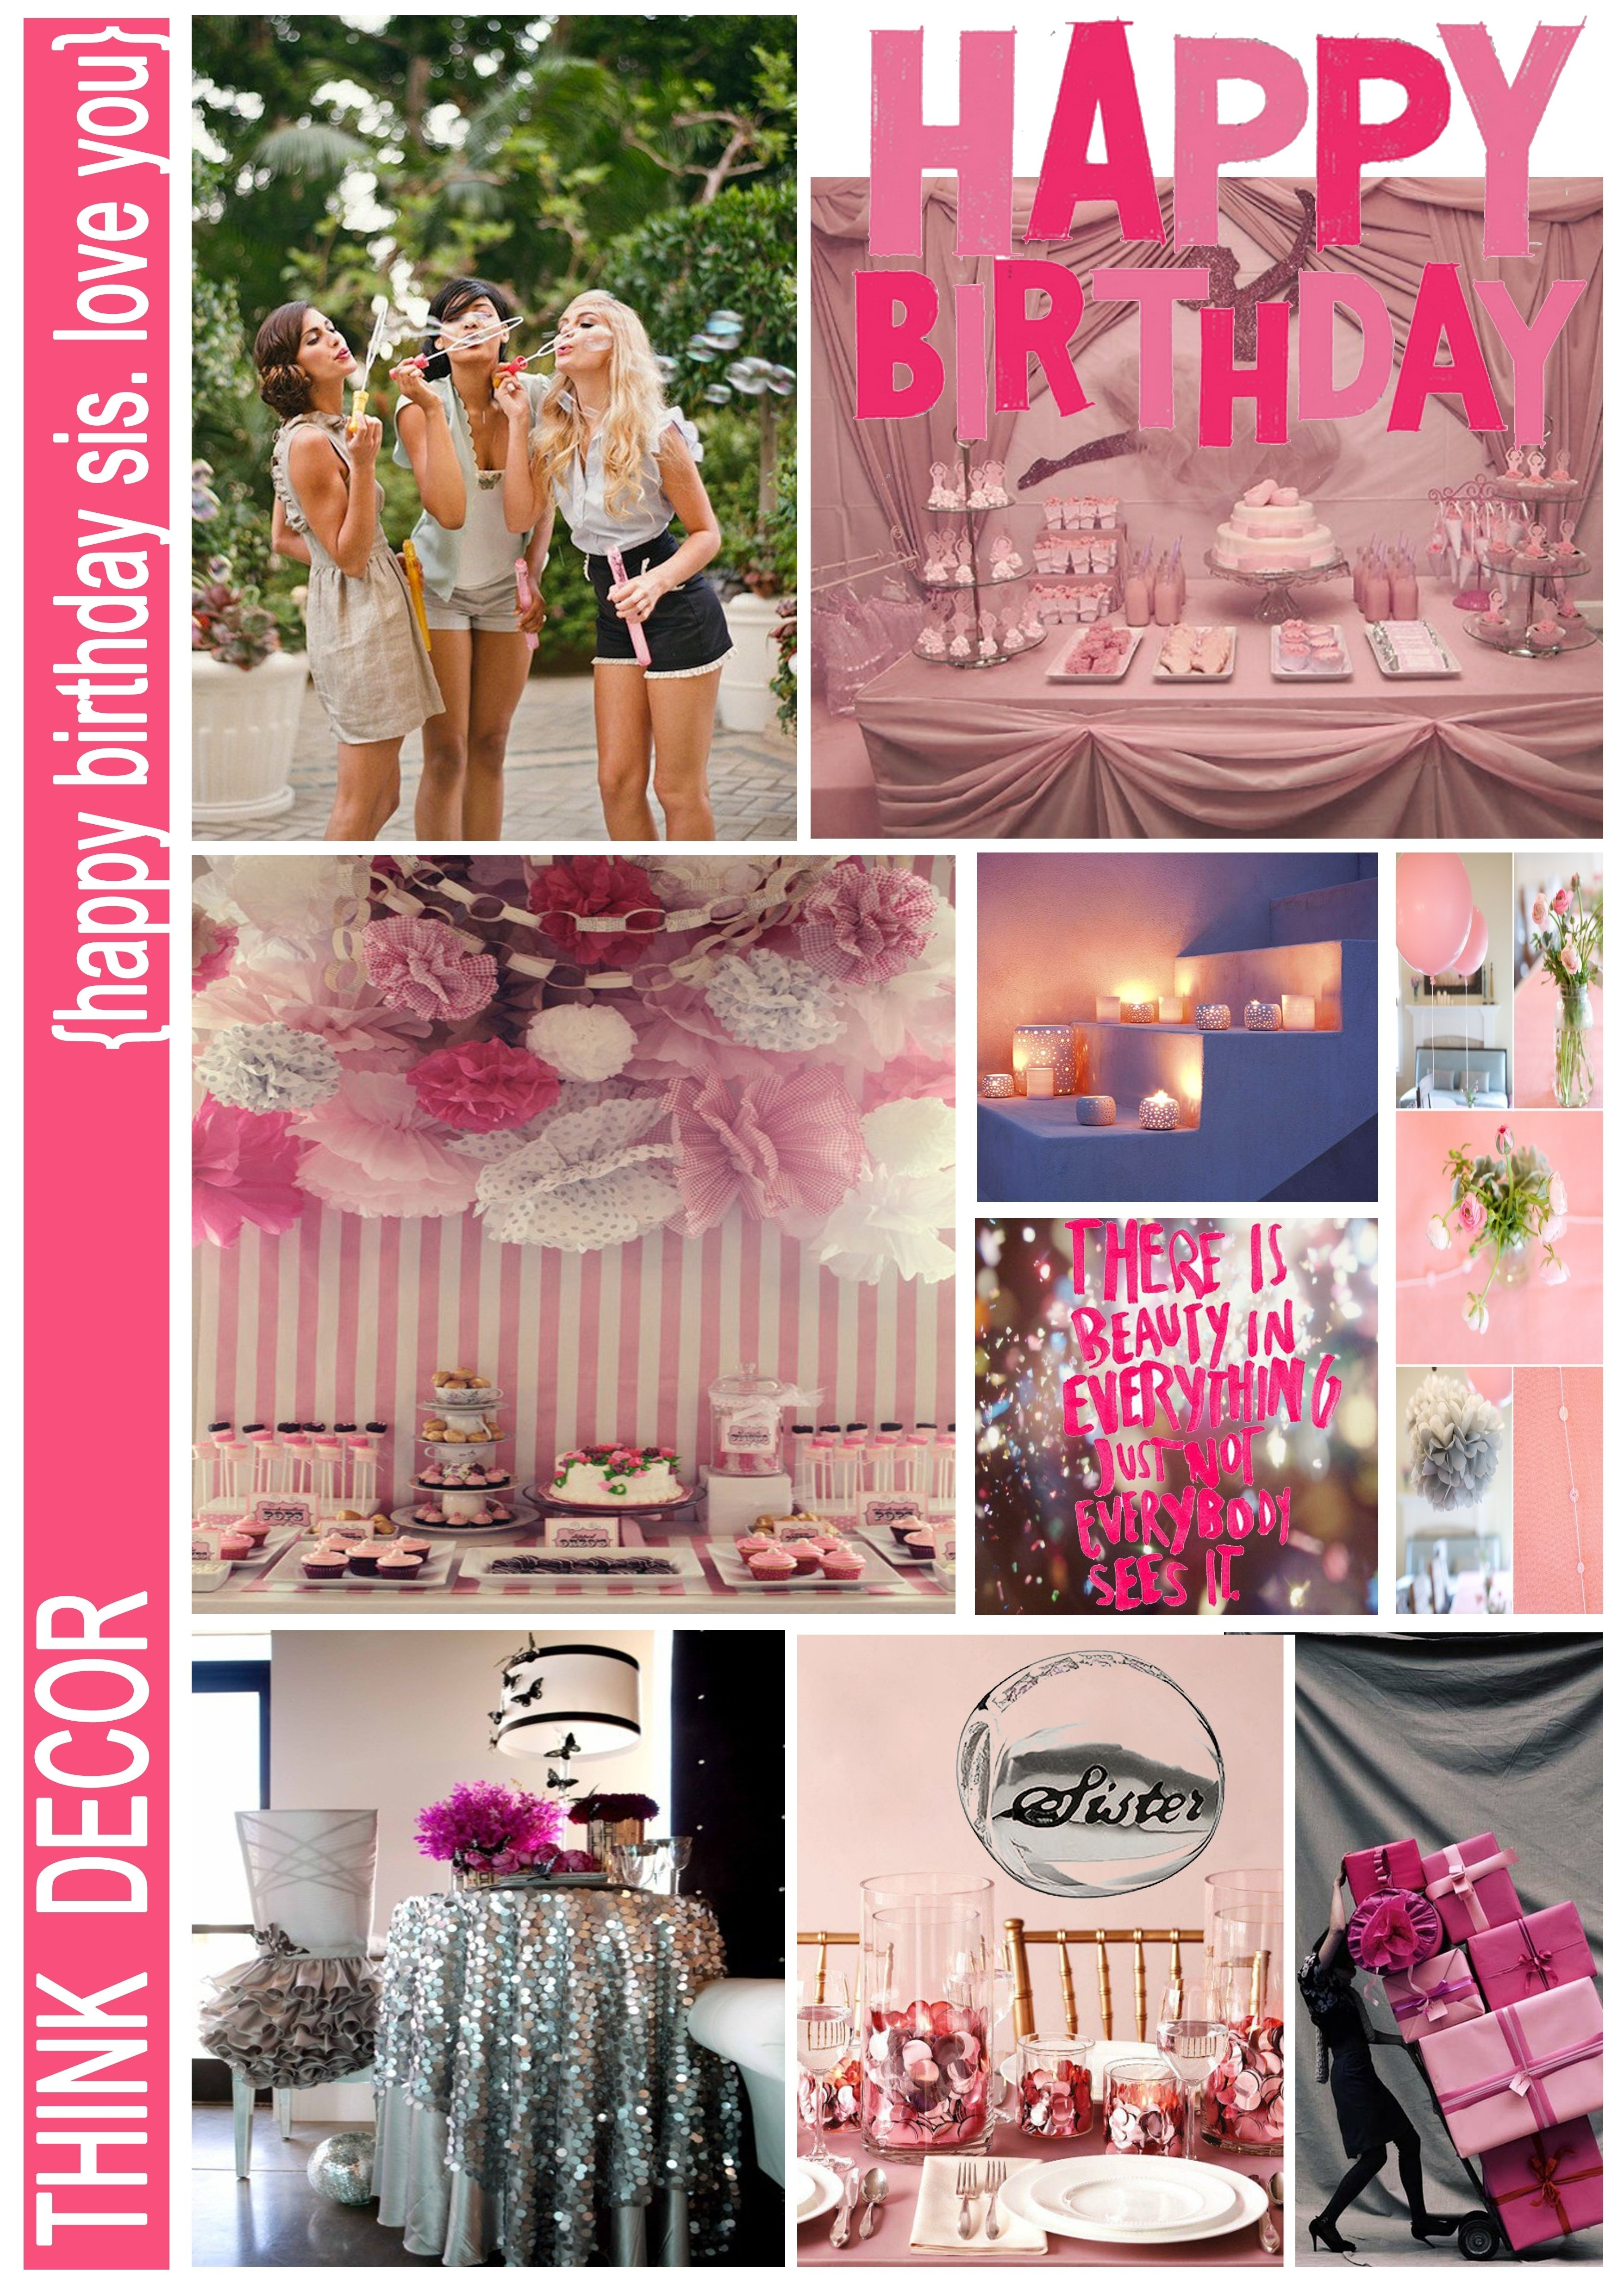 10 Cute 21St Birthday Celebration Ideas For Her happy 21st birthday to my little sister arhitektura 2020